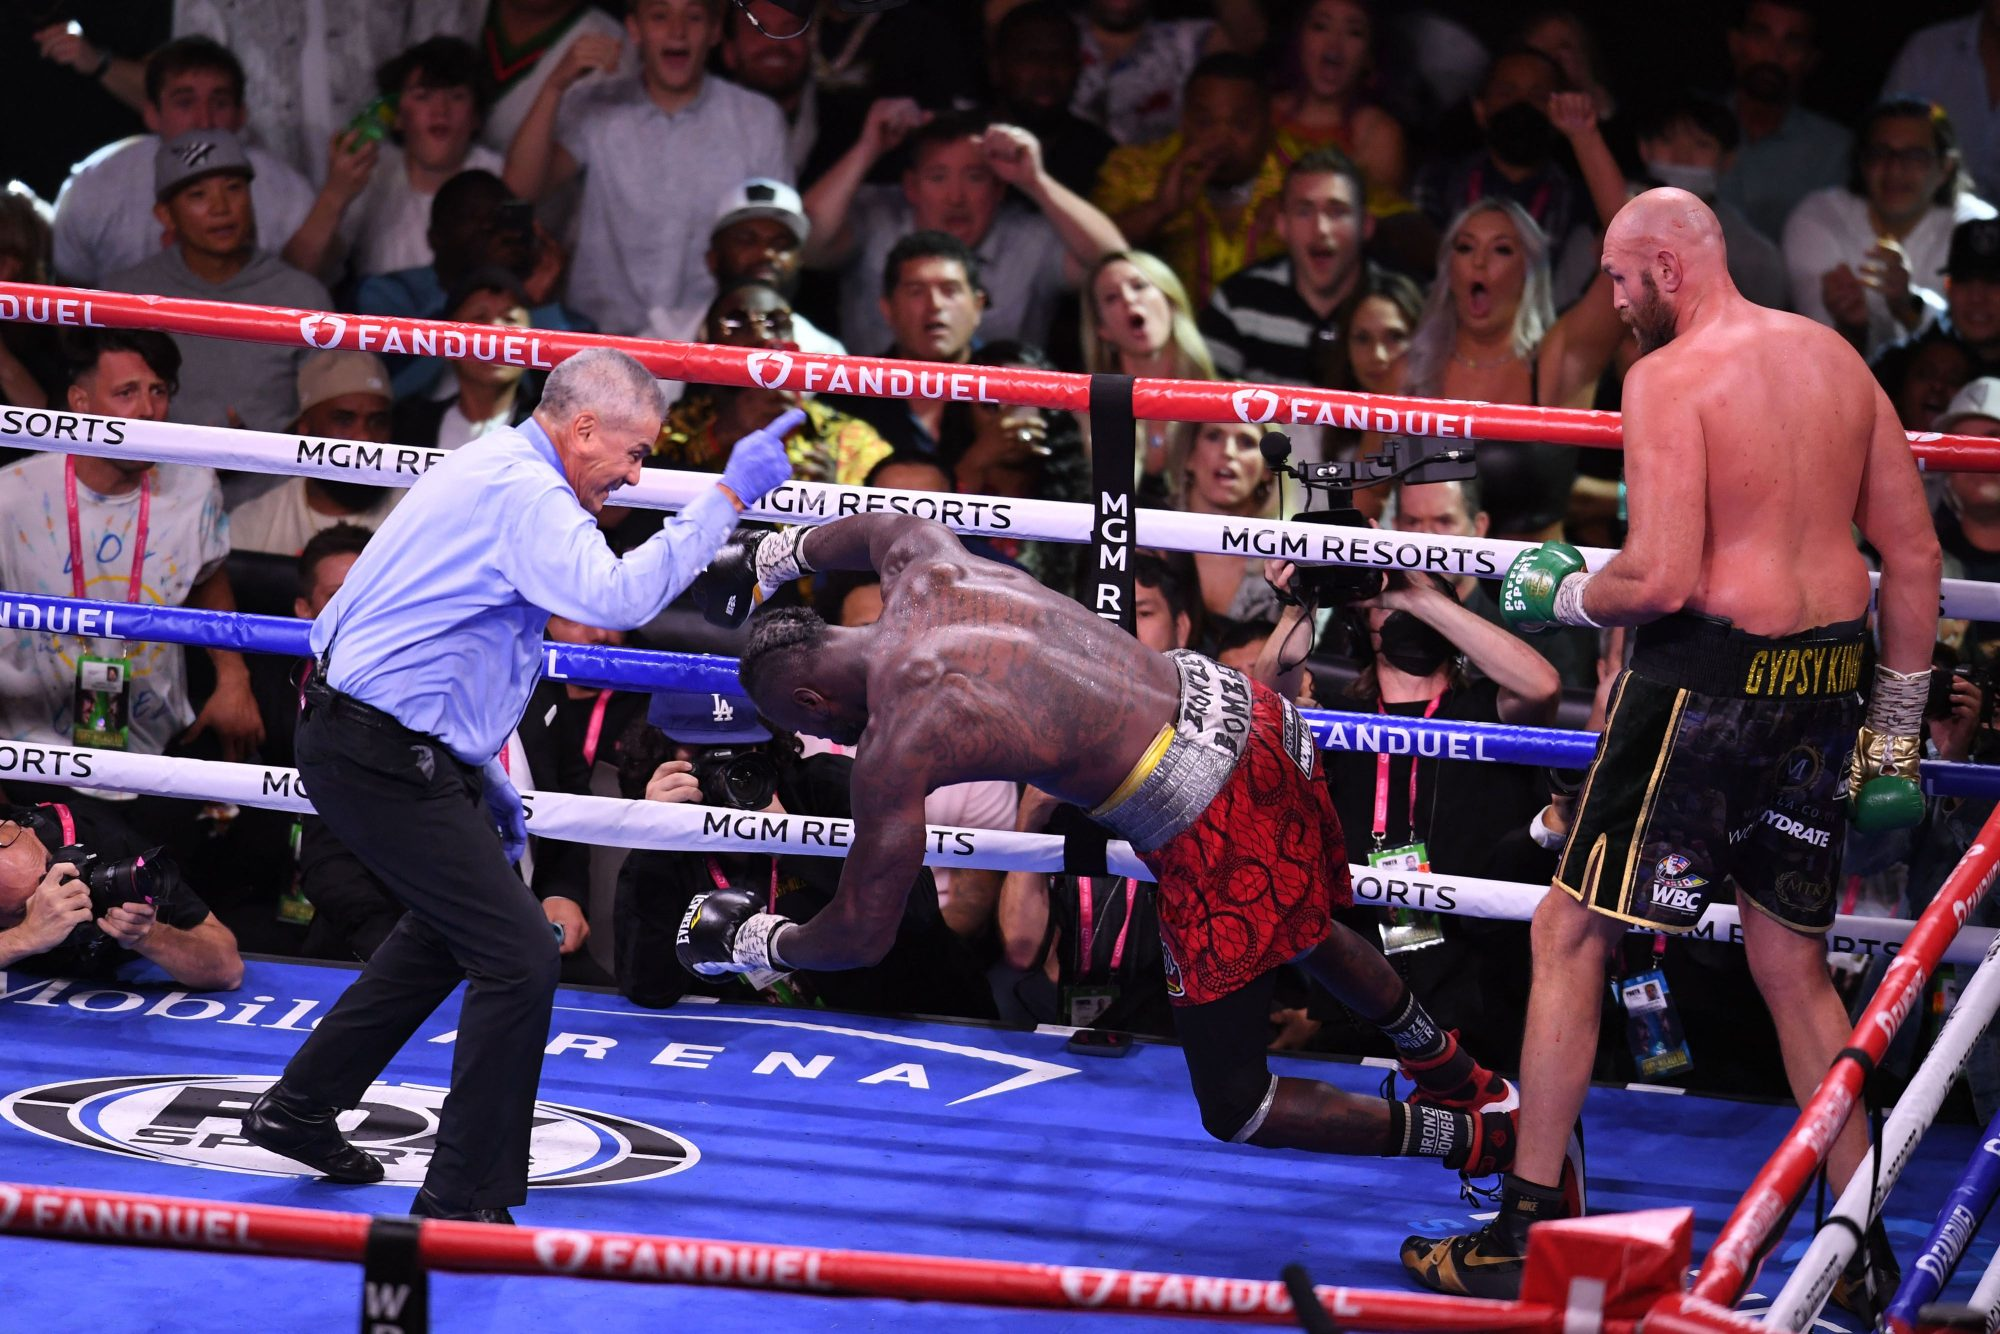 Deontay Wilder falls to the mat